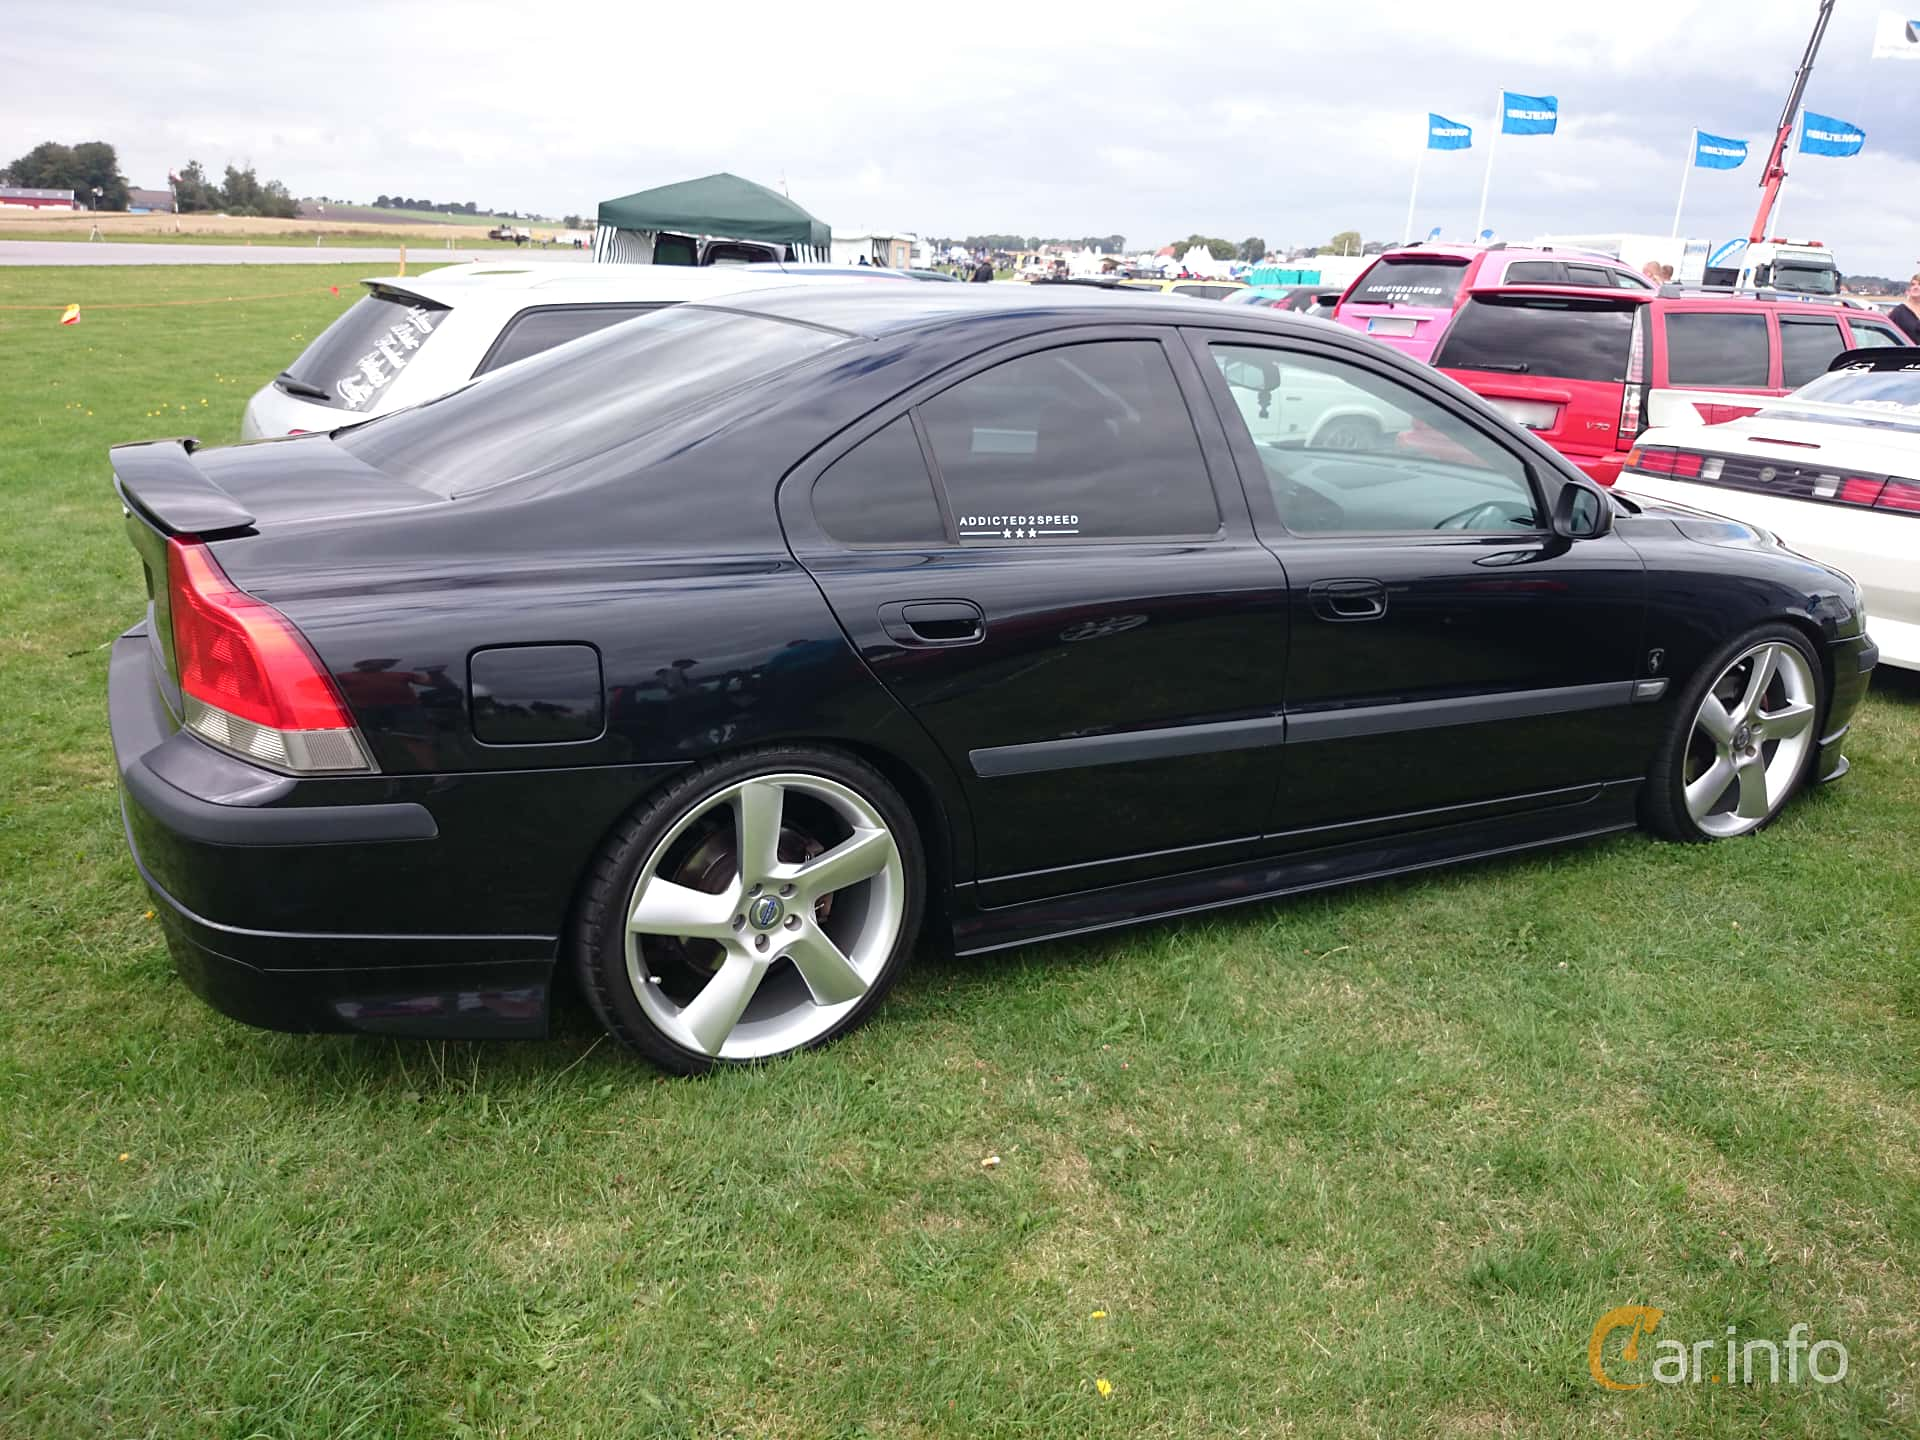 volvo s60 2 3 t5 manual 250hp 2004 at vall kratr ffen 2014. Black Bedroom Furniture Sets. Home Design Ideas